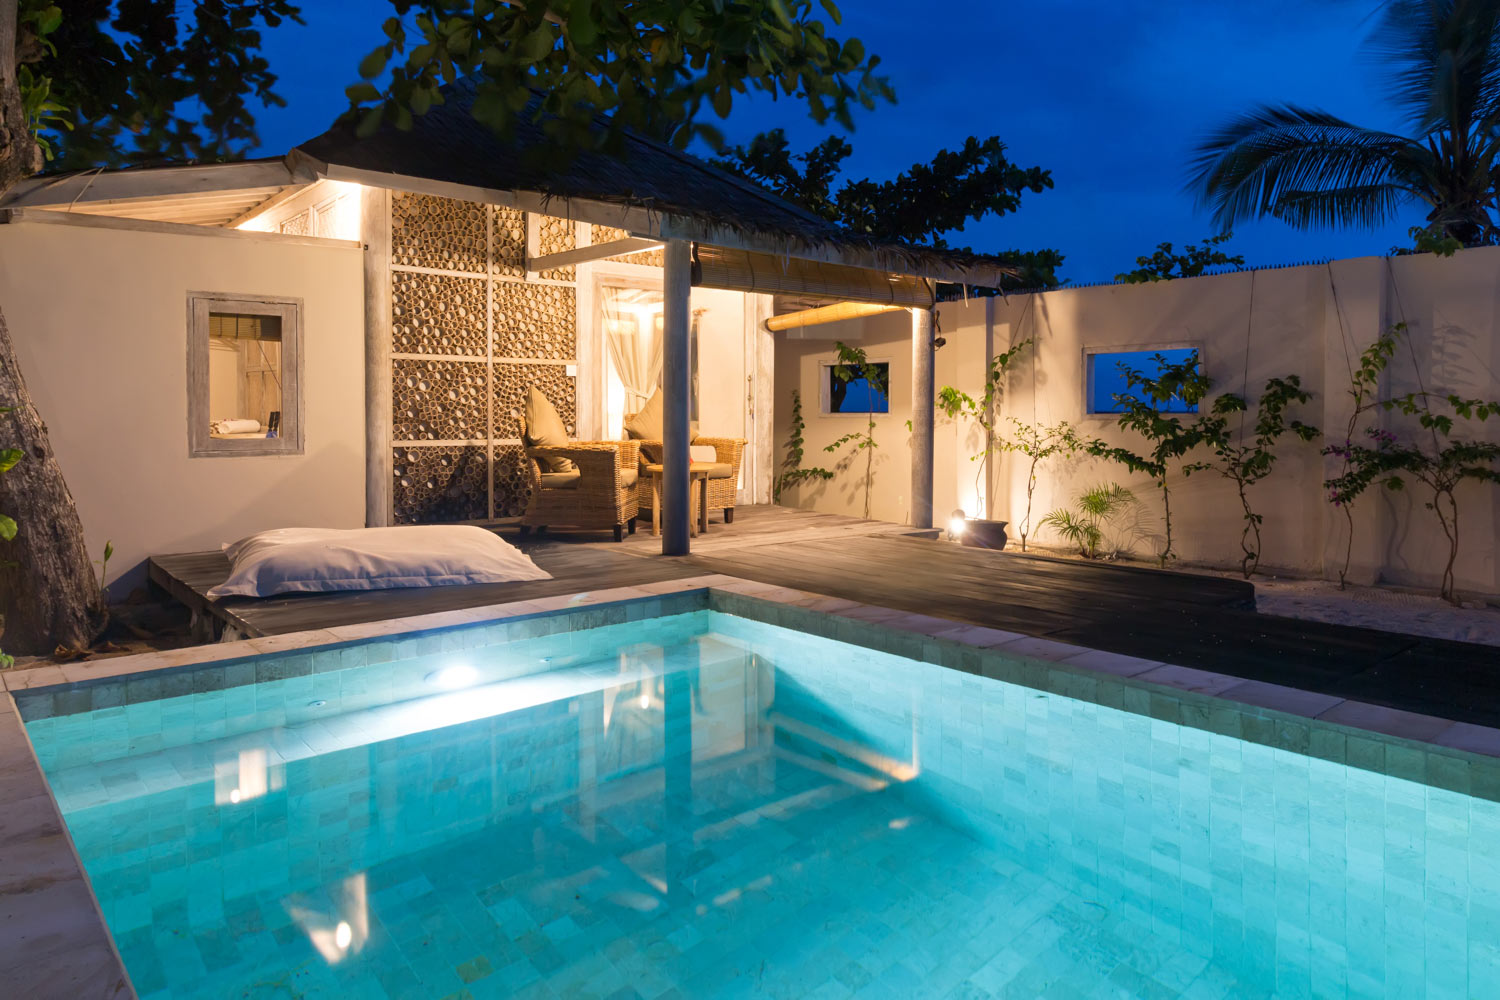 Bungalow by night - Avia Villa Resort - Gili Meno